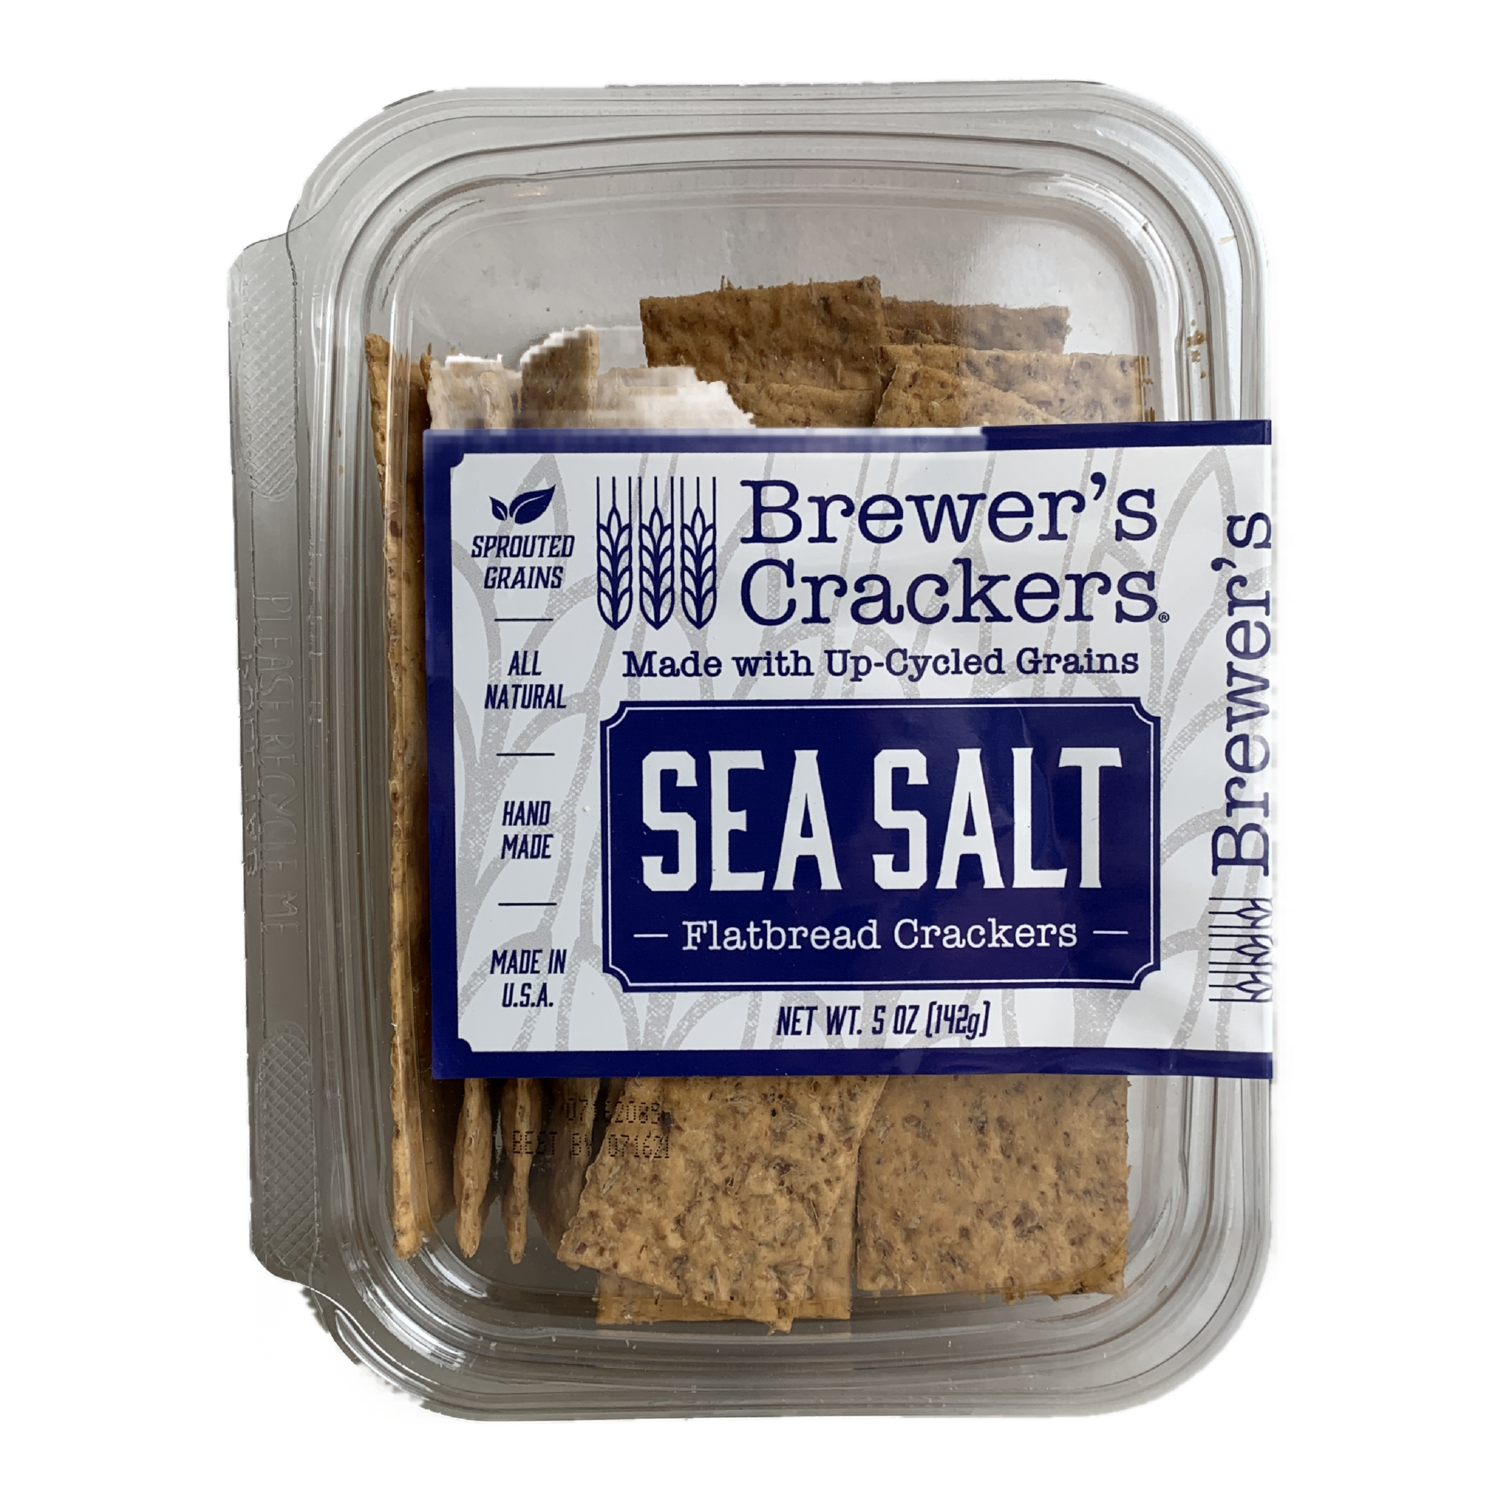 BREWERS CRACKERS sea salt